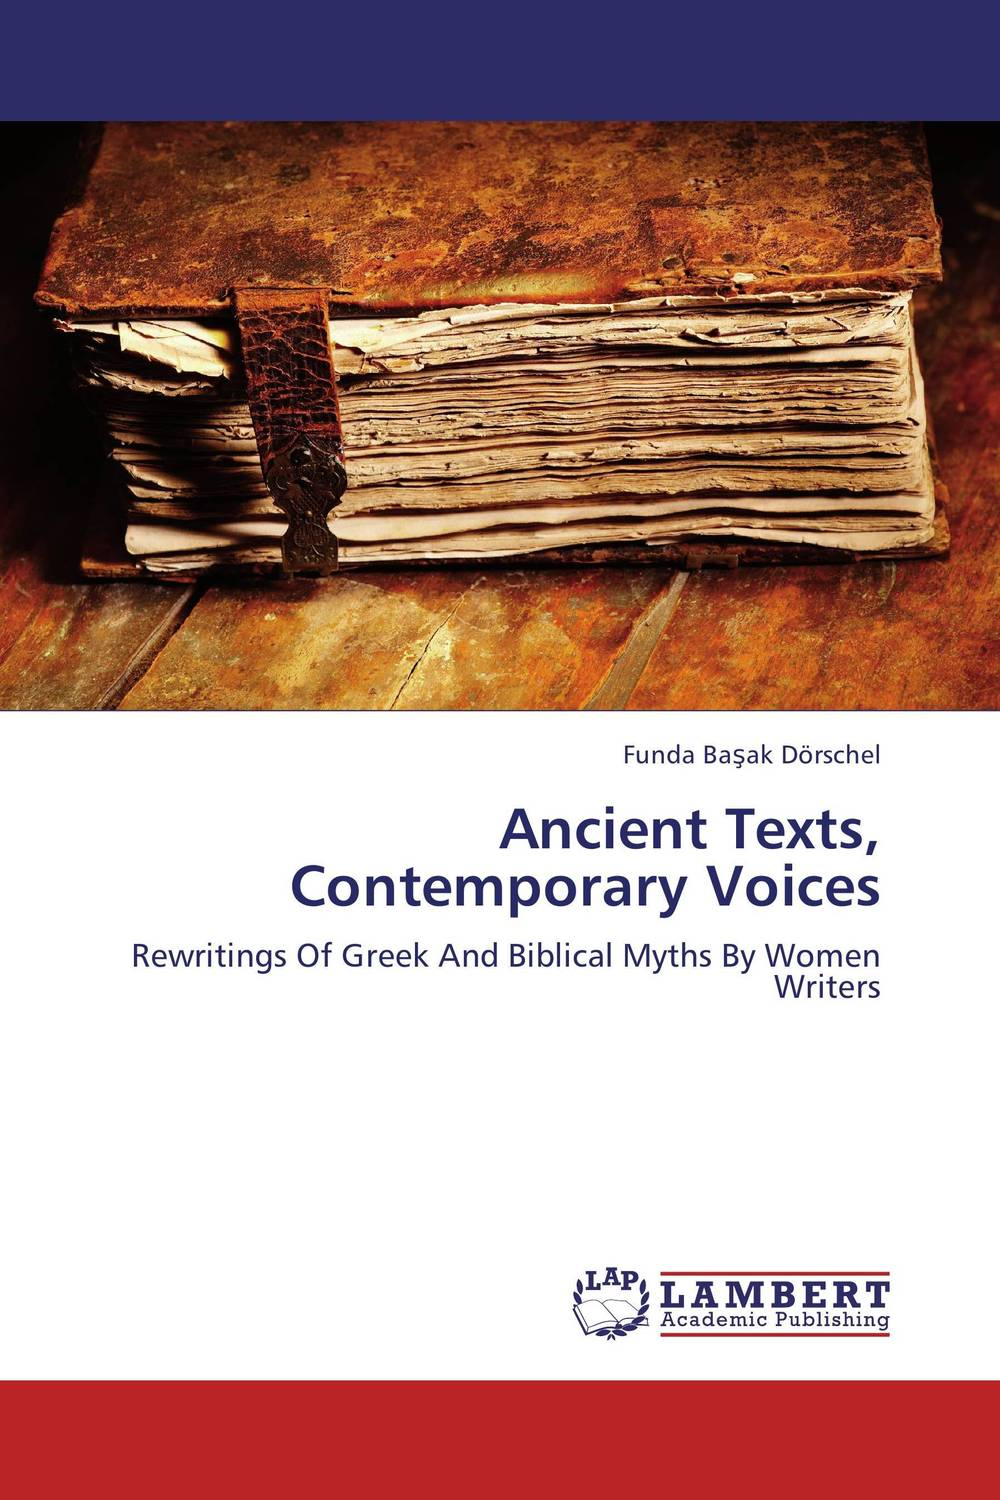 Ancient Texts, Contemporary Voices kenneth fisher l debunkery learn it do it and profit from it seeing through wall street s money killing myths